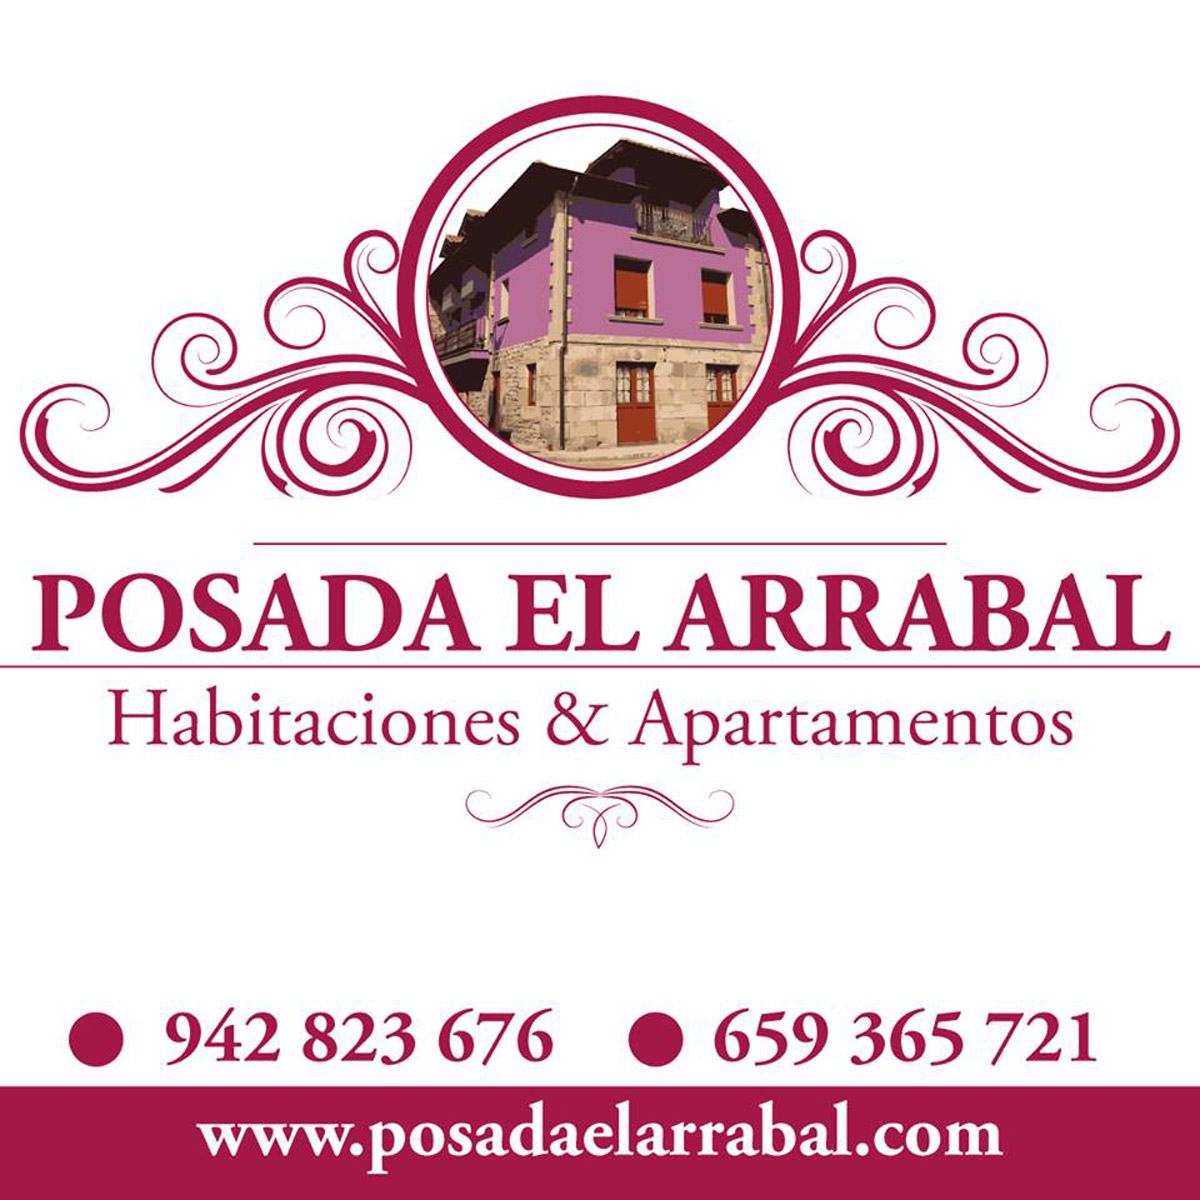 posada-el-arrabal-1